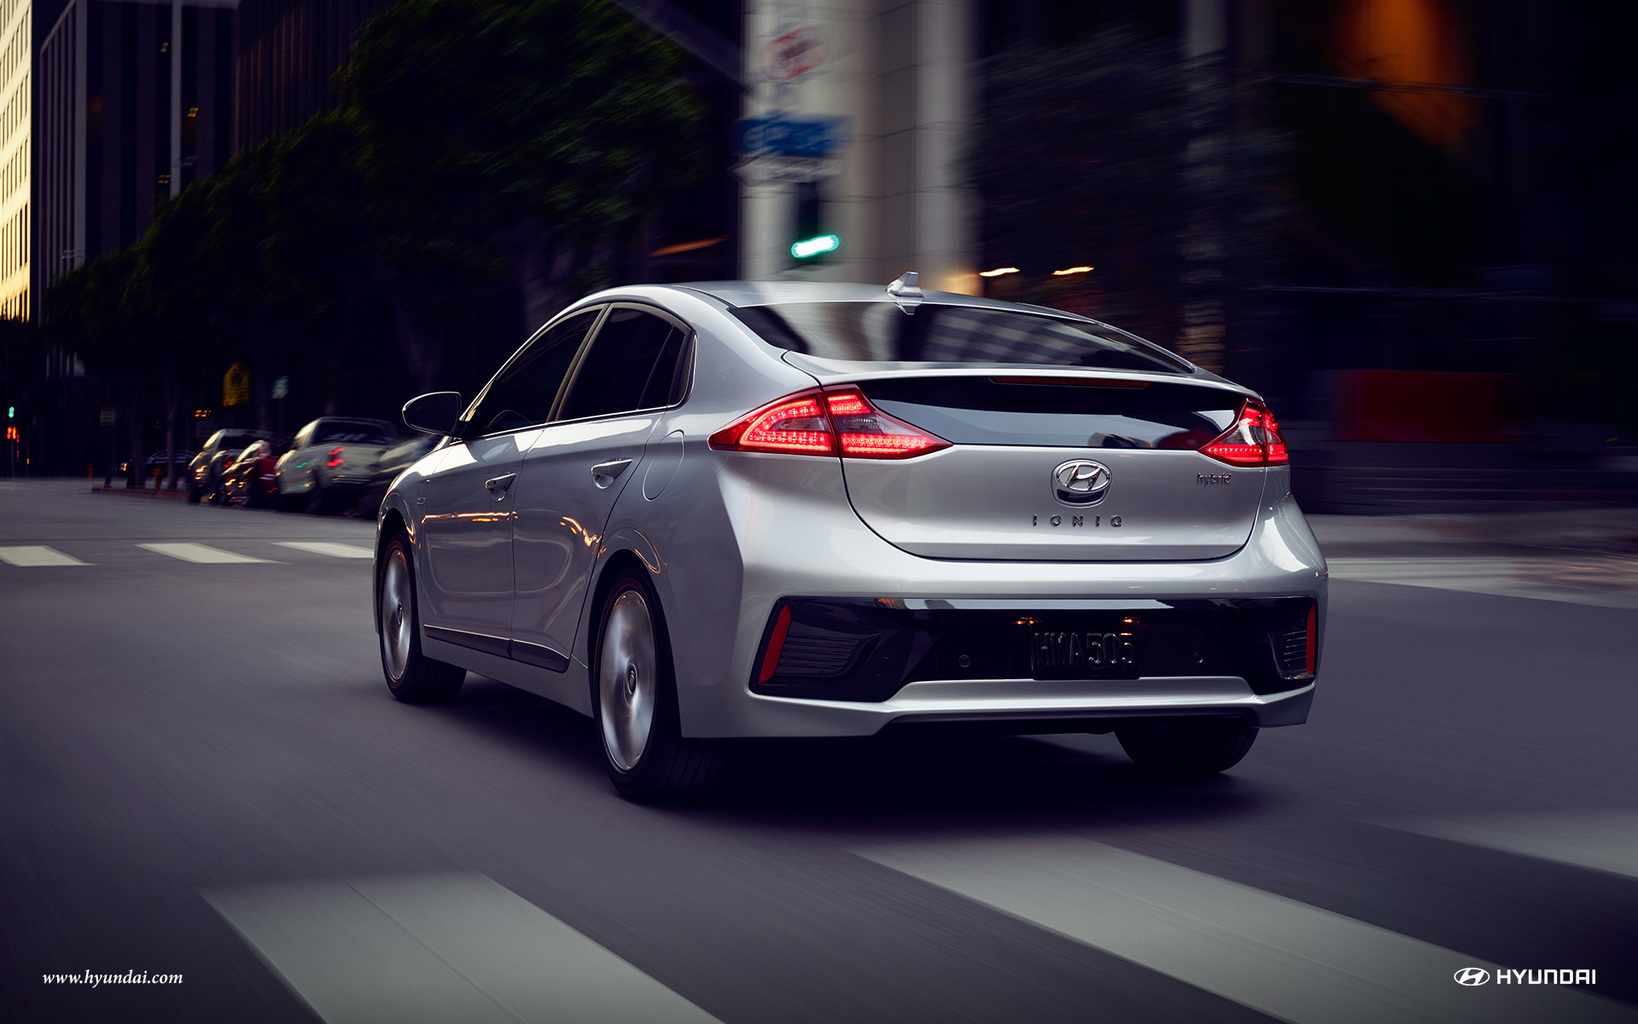 Hyundai's IONIQ, the world's first car offering three electric powertrains democratises e-mobility and is complemented with its own AR app.